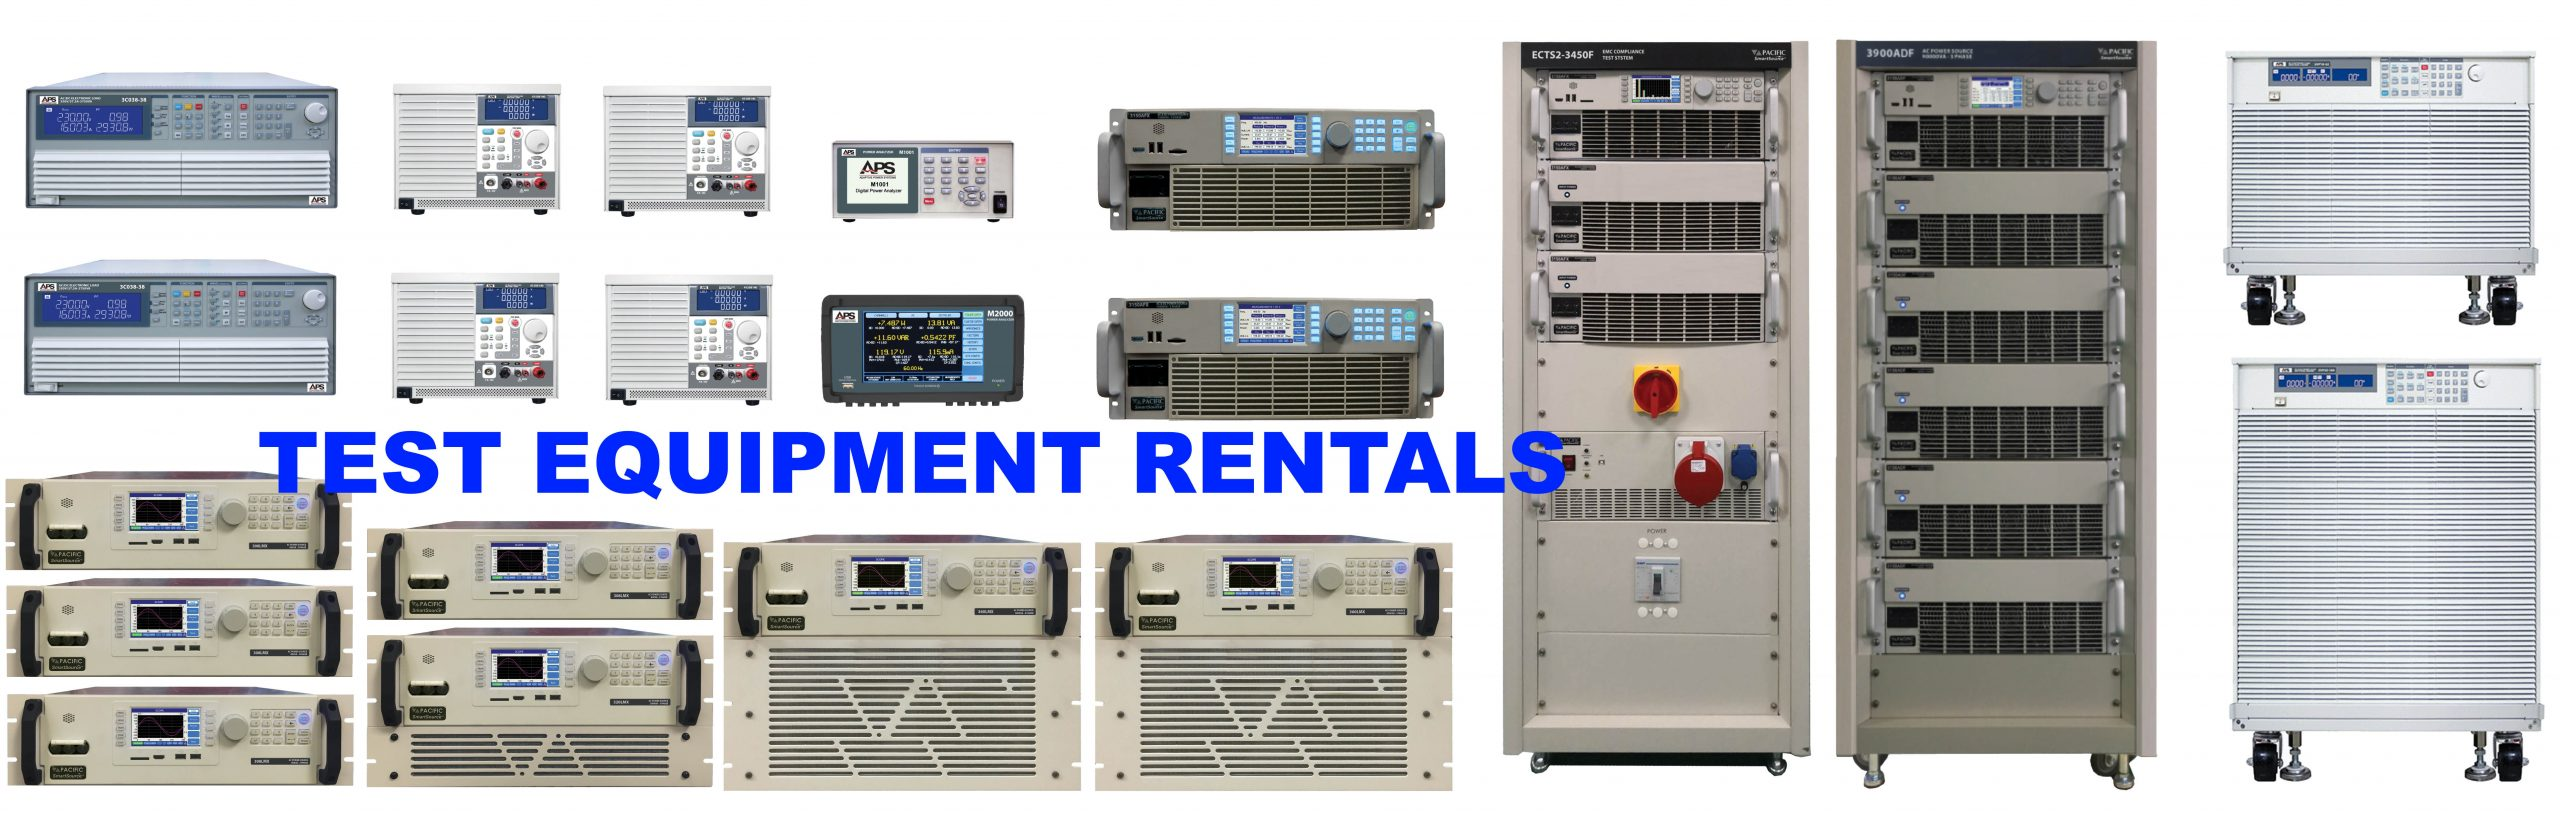 Test Equipment Rentals